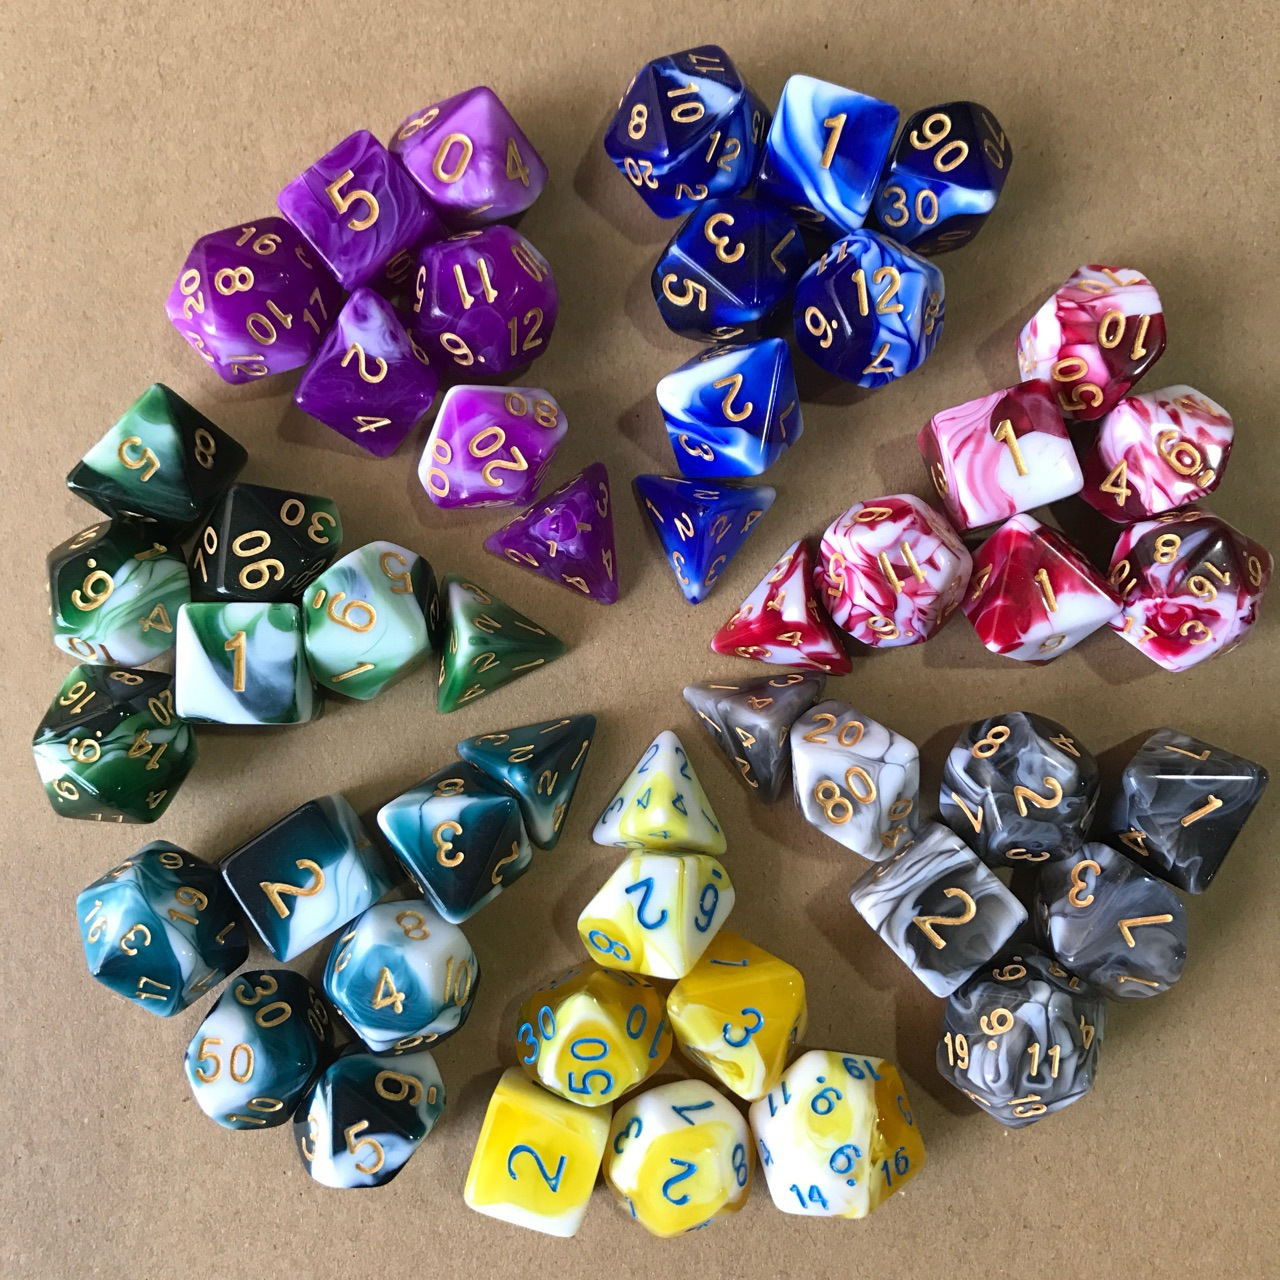 NEW 7pcs/lot Resin Multifaceted Dice D&d D4 D6 D8 D10 D% D12 D20 Dice For Polyhedral TRPG Games Board Game Dice Hot